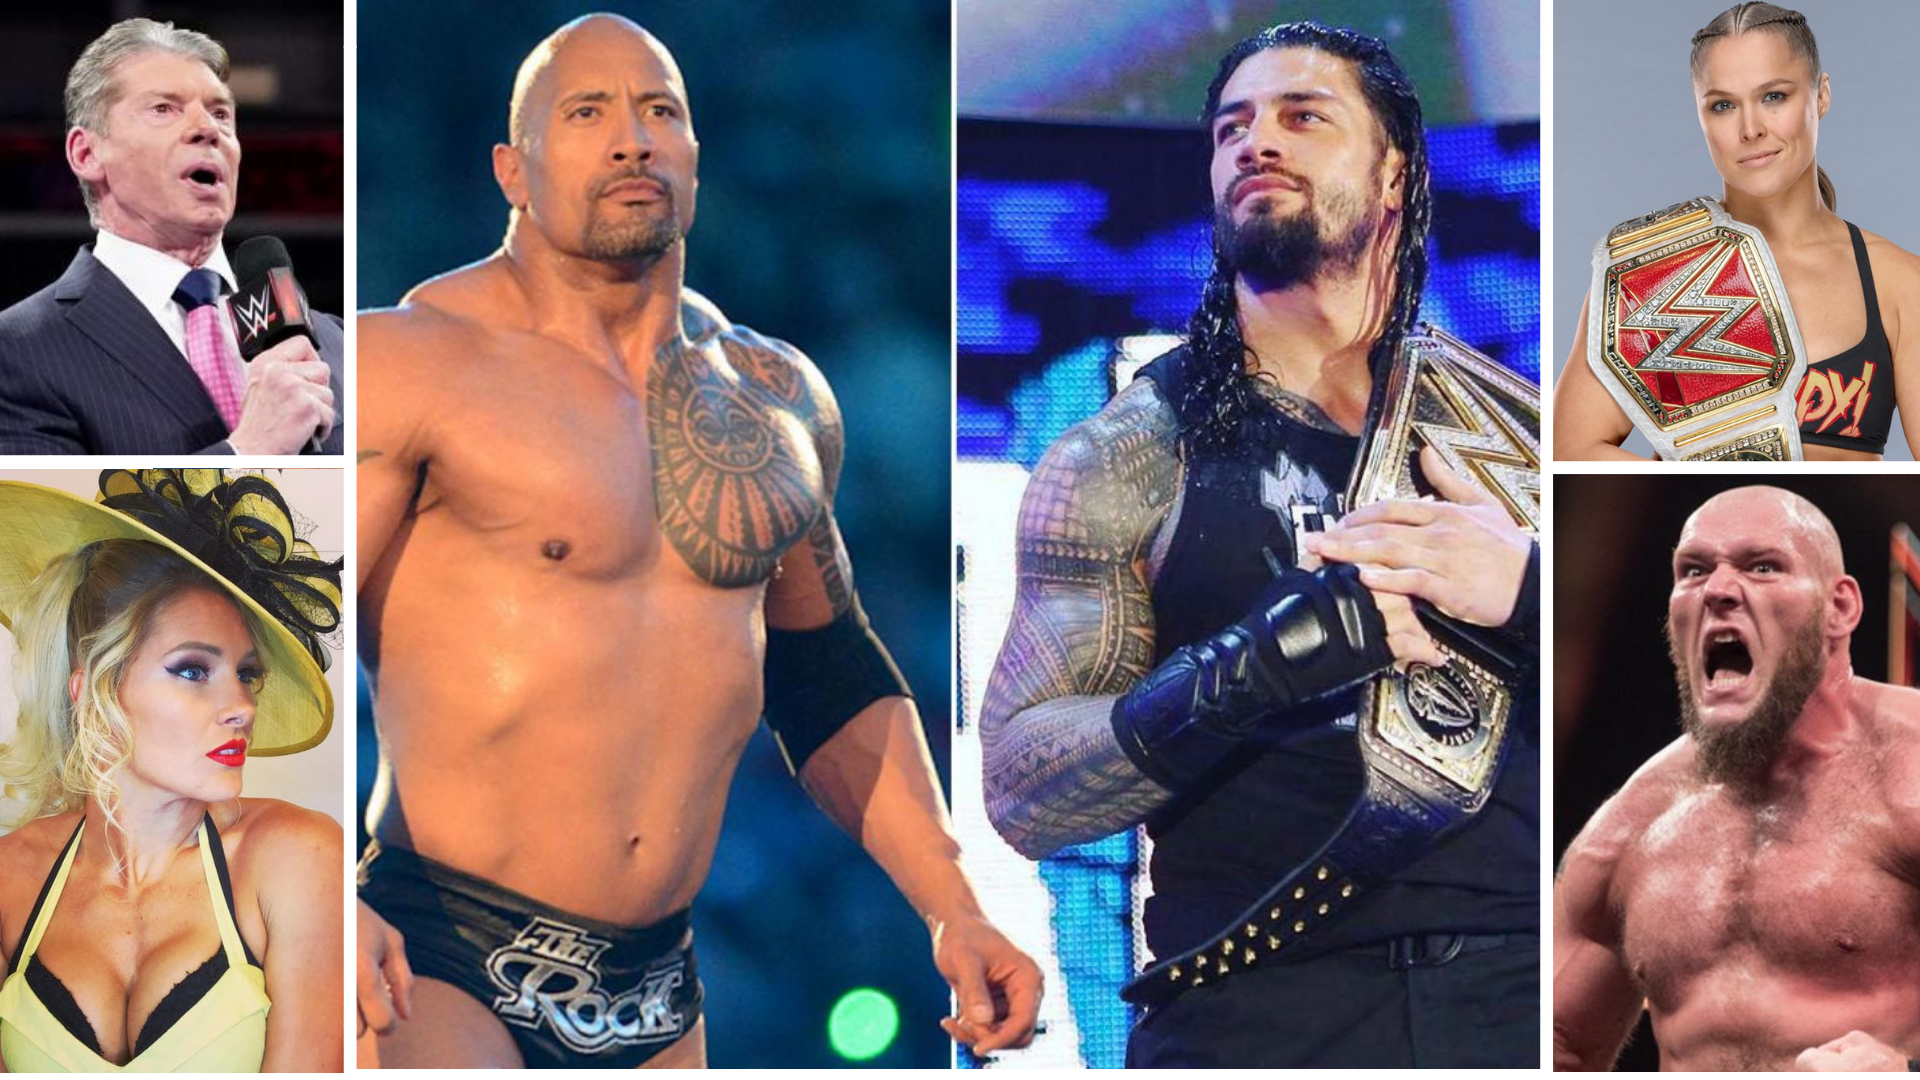 Get Ready To Rock ... And Other Wrestling Predictions For 2019